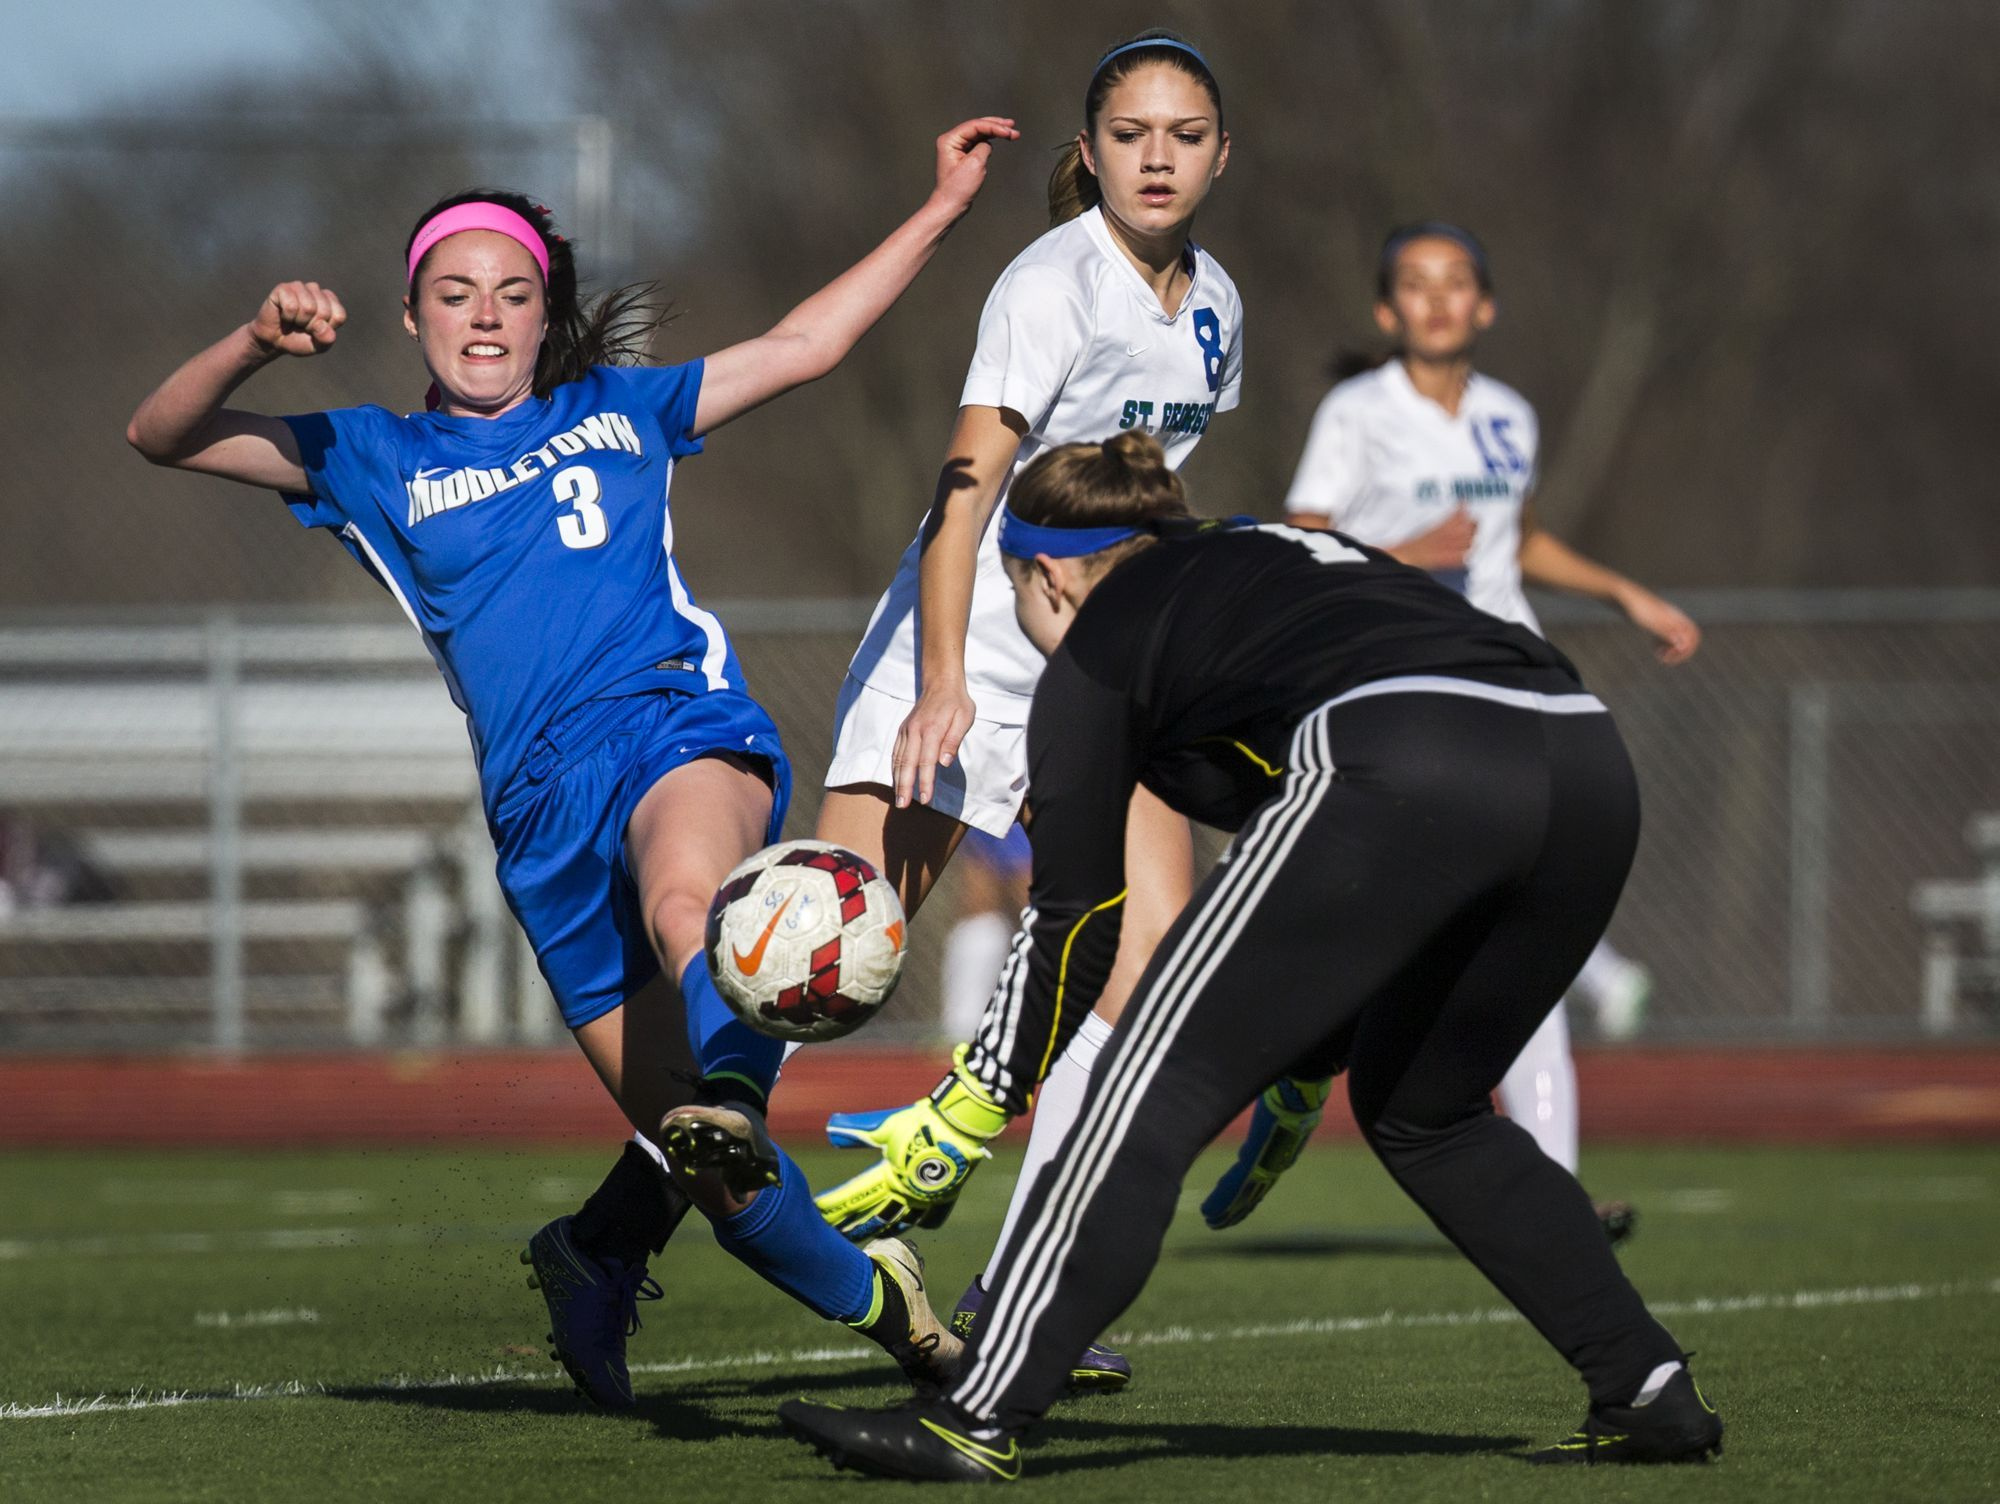 St. Georges keeper Morgan Mitchell takes the ball off of the foot of Middletown's Rachel Finelli (left) in the second half of Middletown's 4-0 win over St. Georges at St. Georges Technical High School in Middletown on Wednesday afternoon.